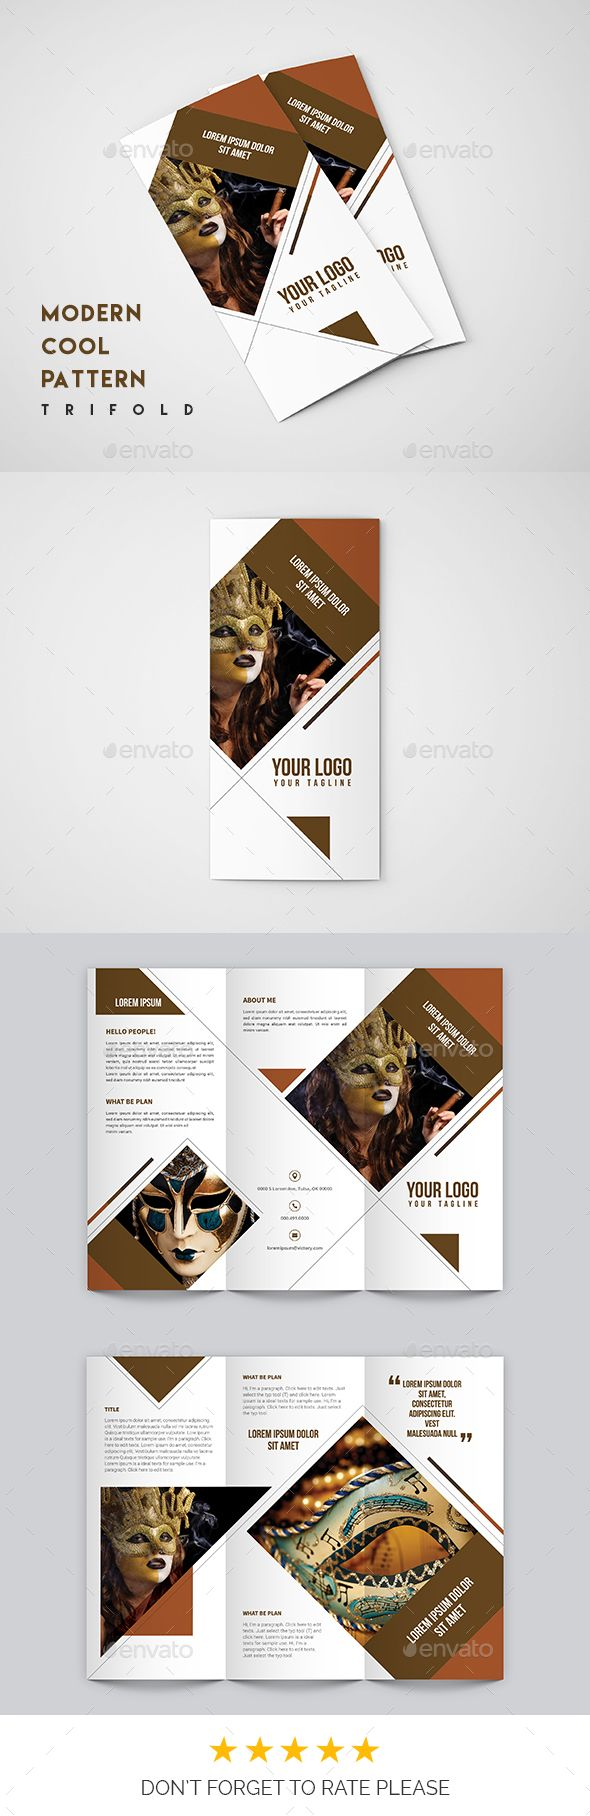 Trifold Brochure | Brochure template, Brochures and Template